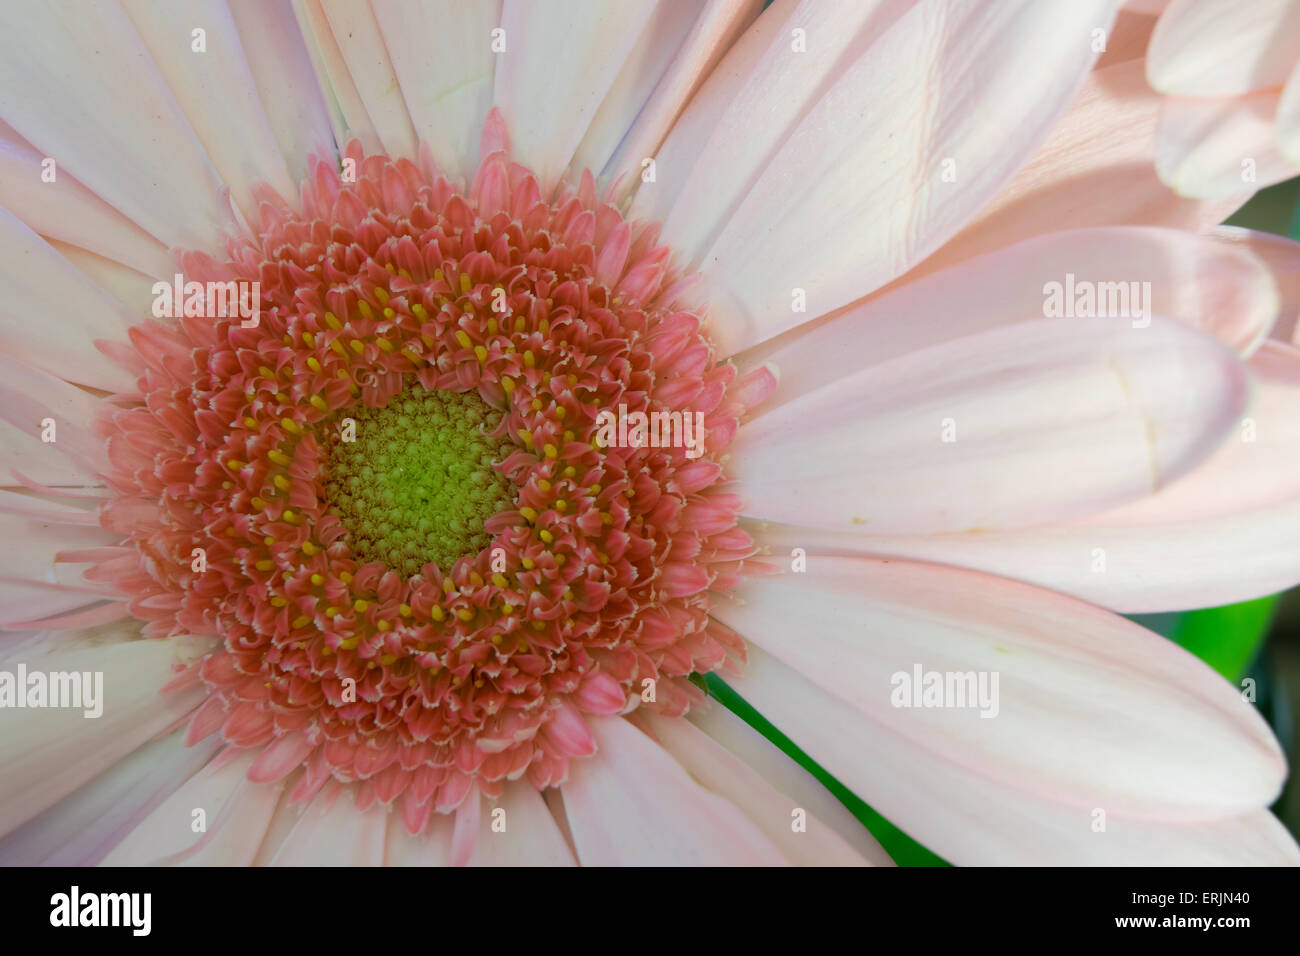 Macro image of a pink flower with a detailed center - Stock Image